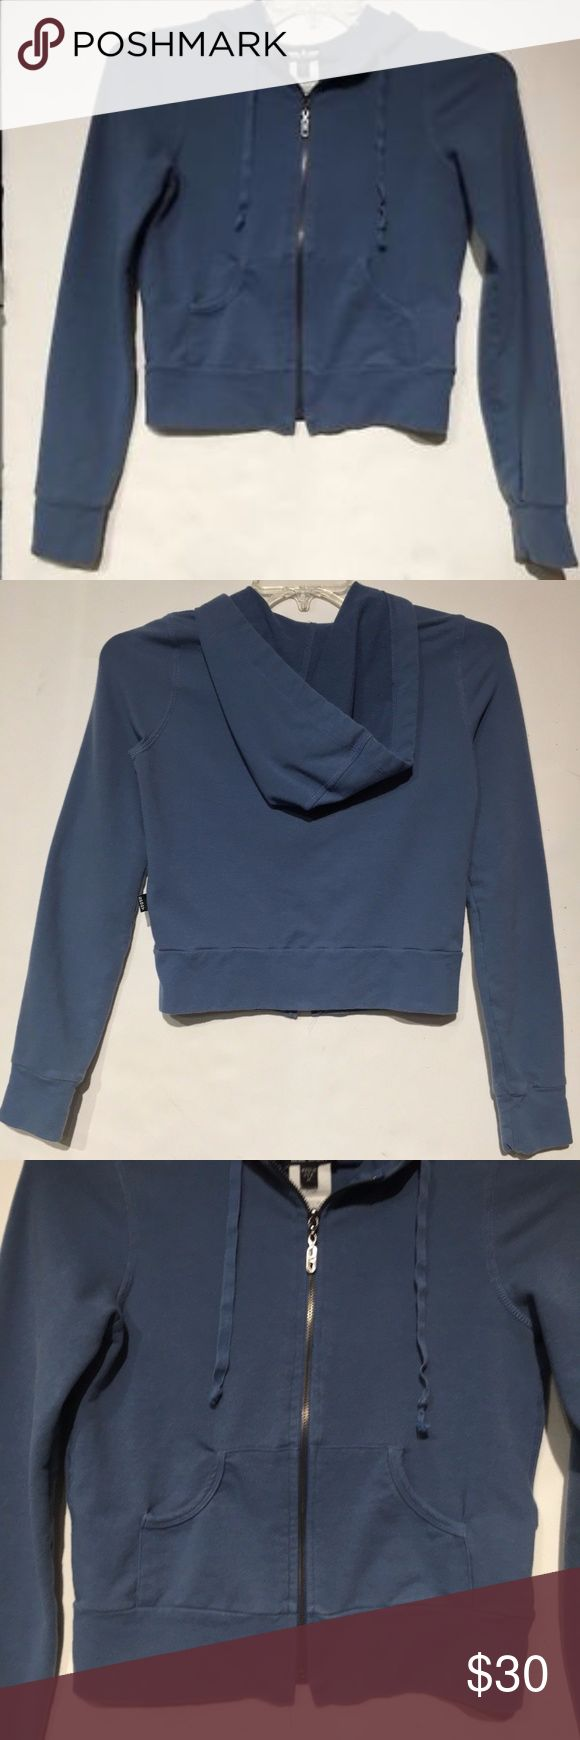 Women's Bebe Sport Zip-up A brand new, cotton, gorgeous blue, bebe sport zip-up hoodie, never worn or used, without tags.  It is the perfect hoodie to wear with jeans or when you want to dress down with a pair of your favorite sweat pants. A staple, must have piece for your wardrobe.    Brand new without tags, in perfect condition!!!!! Bebe Sport Tops Sweatshirts & Hoodies